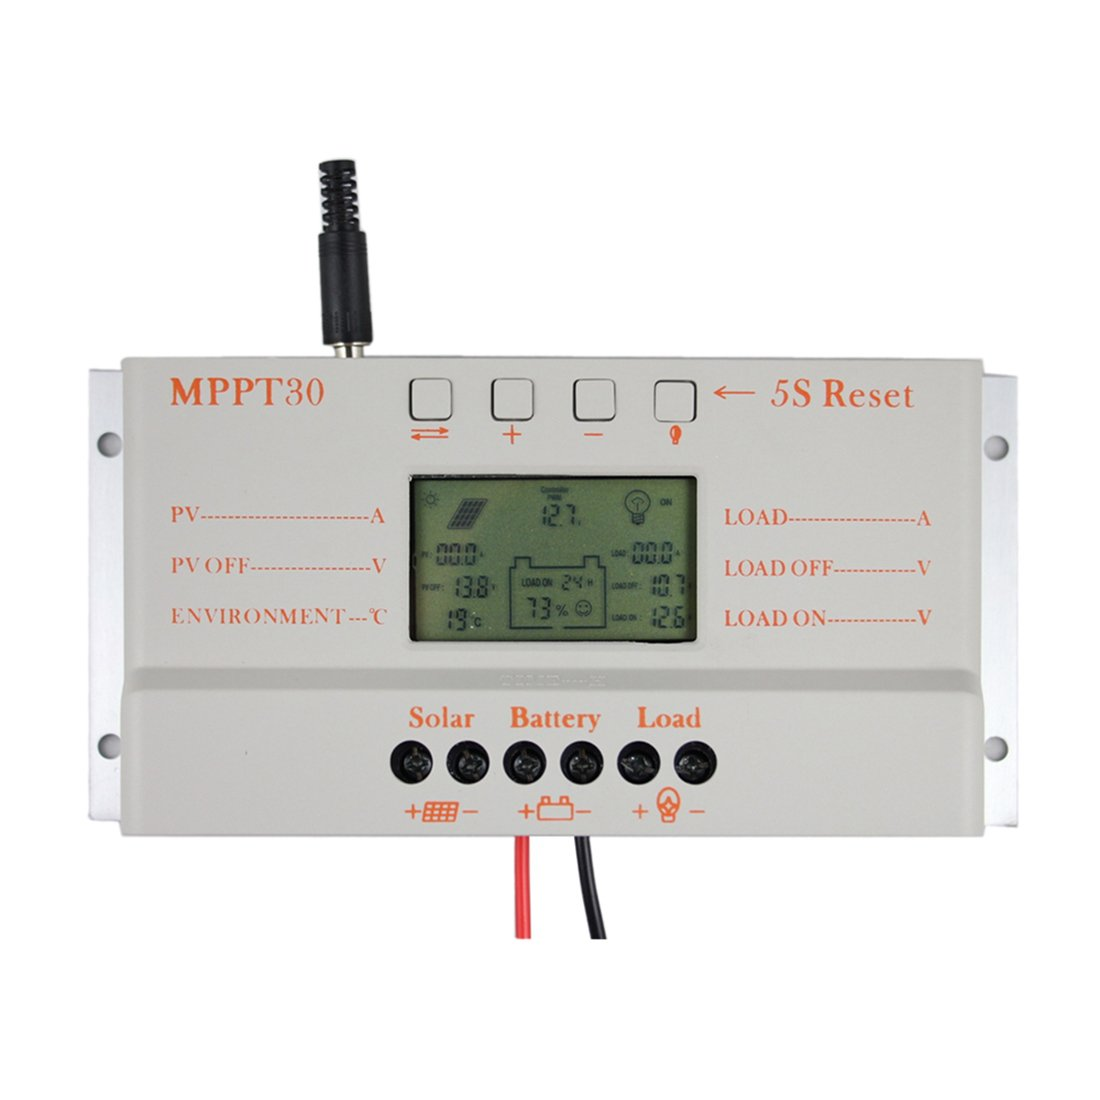 Y&H 30A MPPT Solar Charge Controller 12V/24V Solar Panel Battery Voltage Intelligent Regulator with USB Port LCD Display,PWM Charger